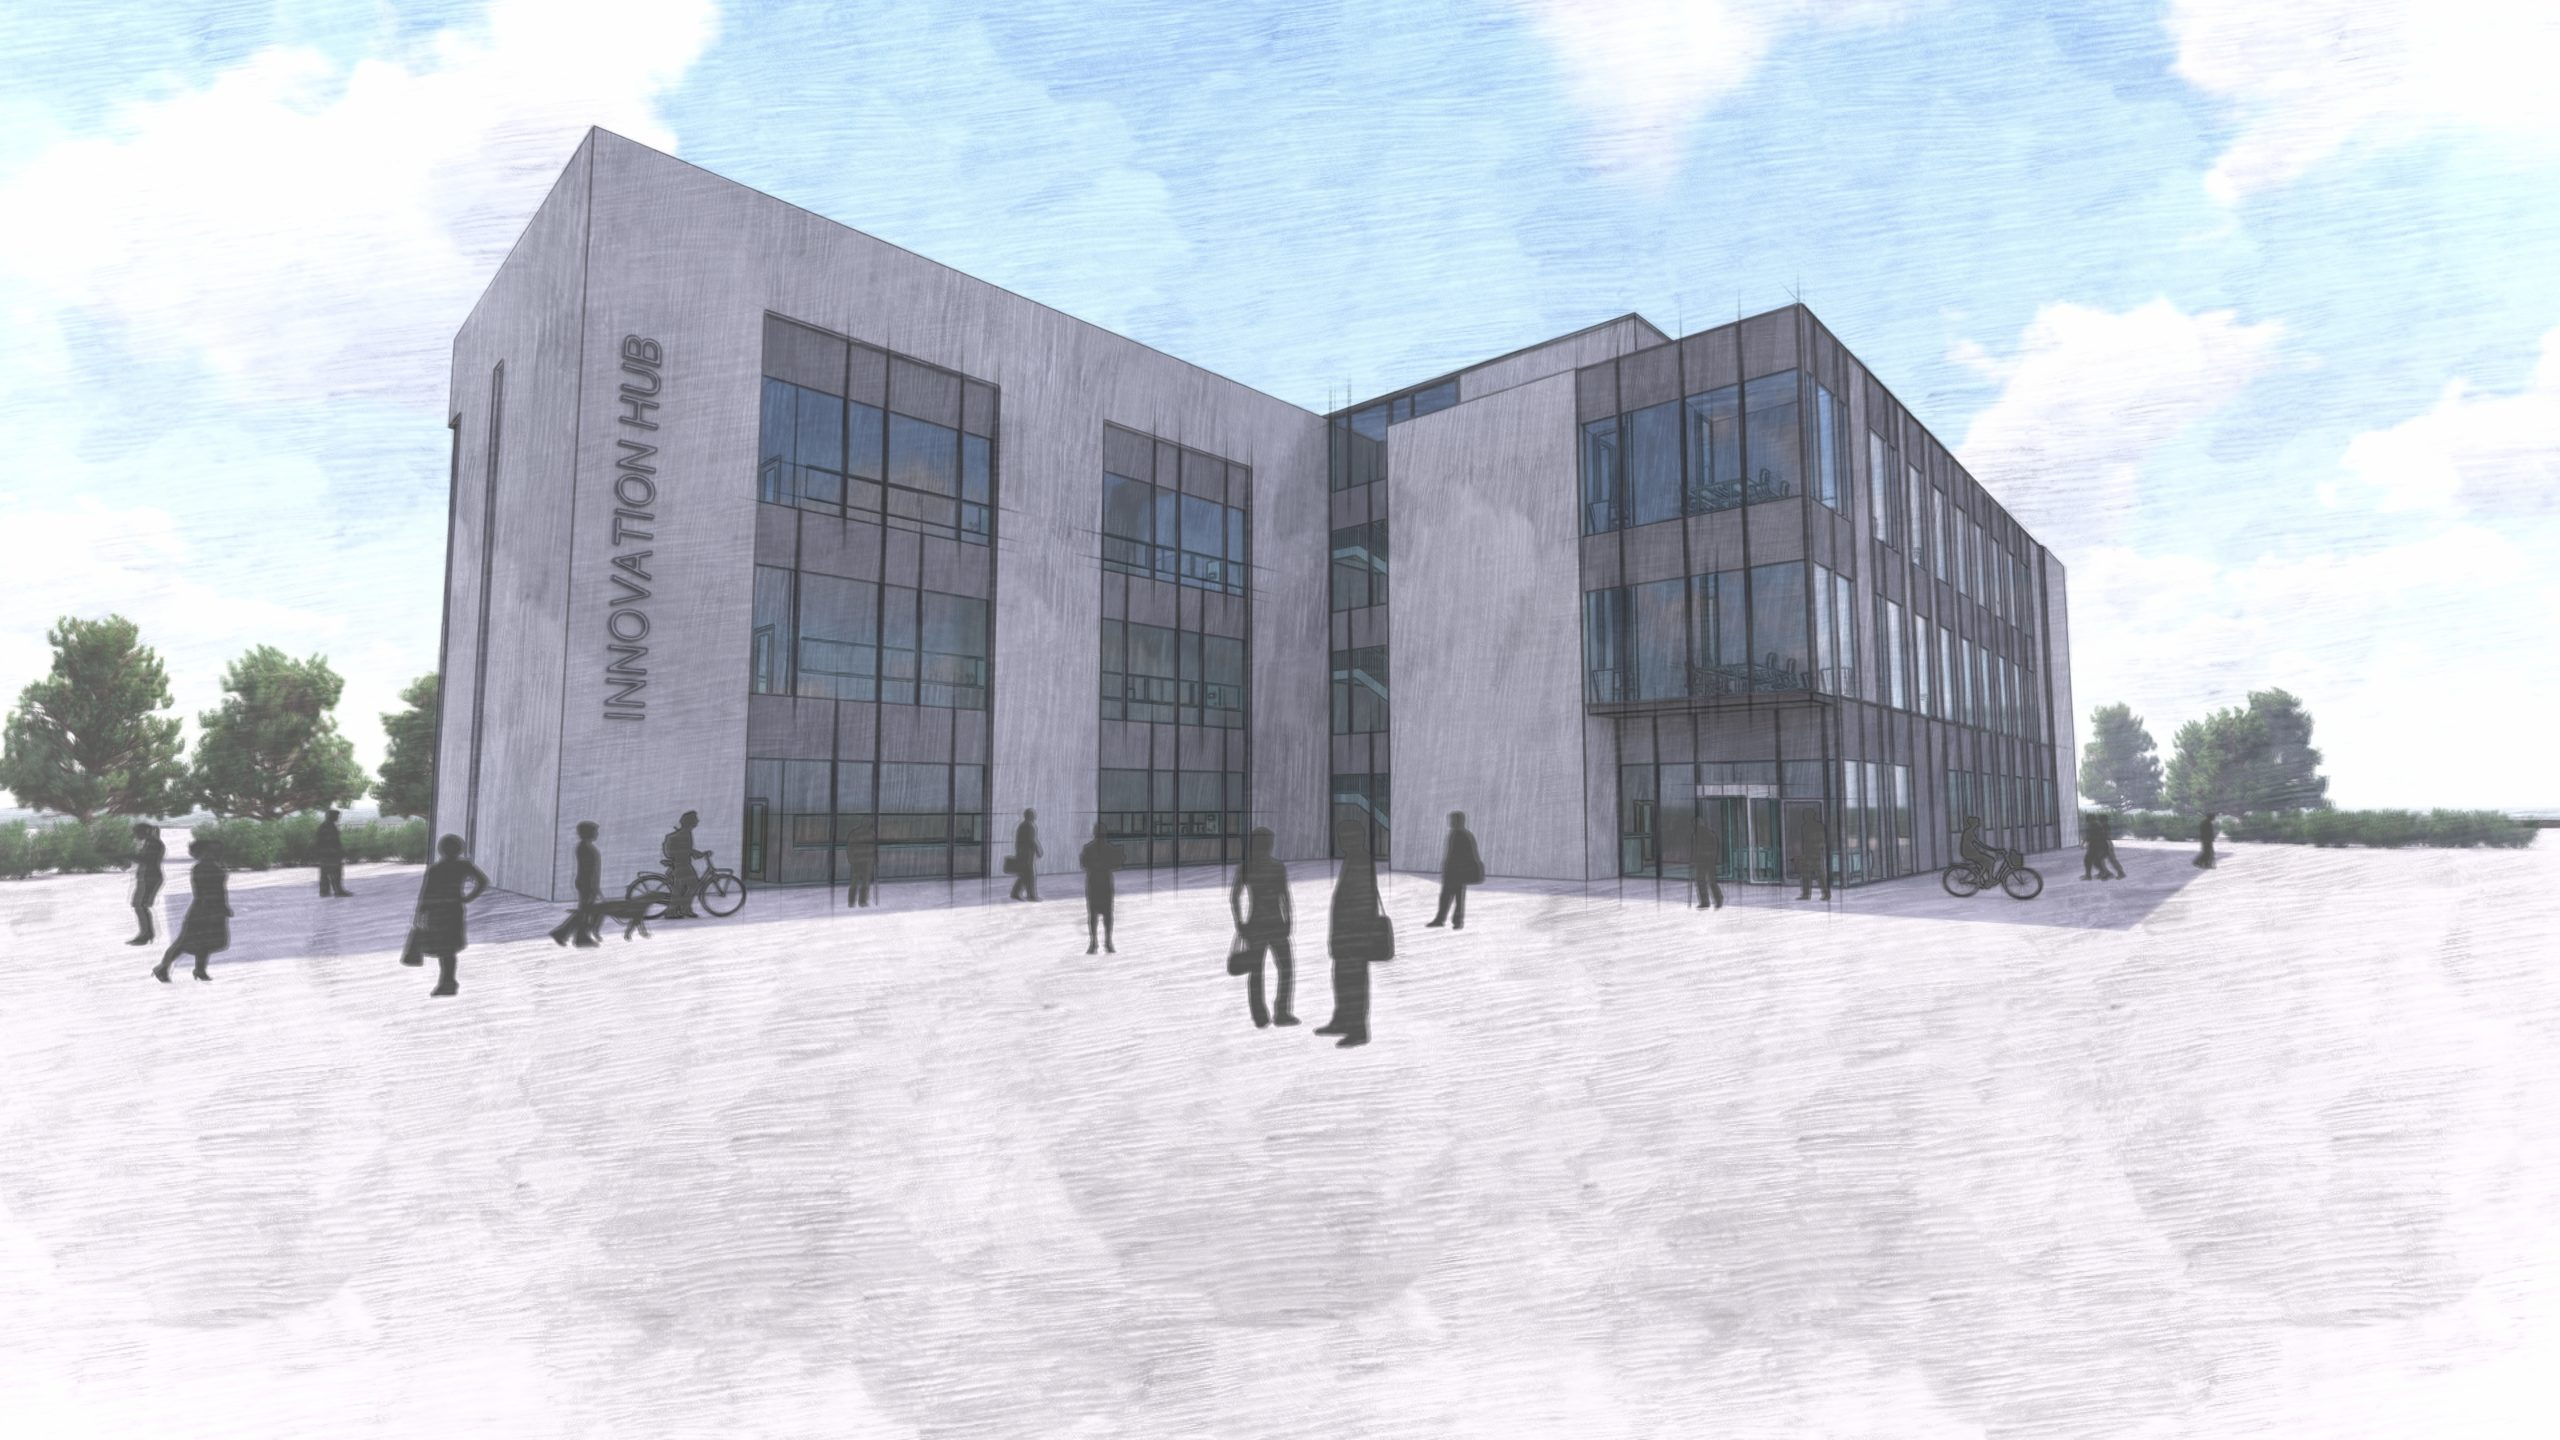 An artist impression of the facility.